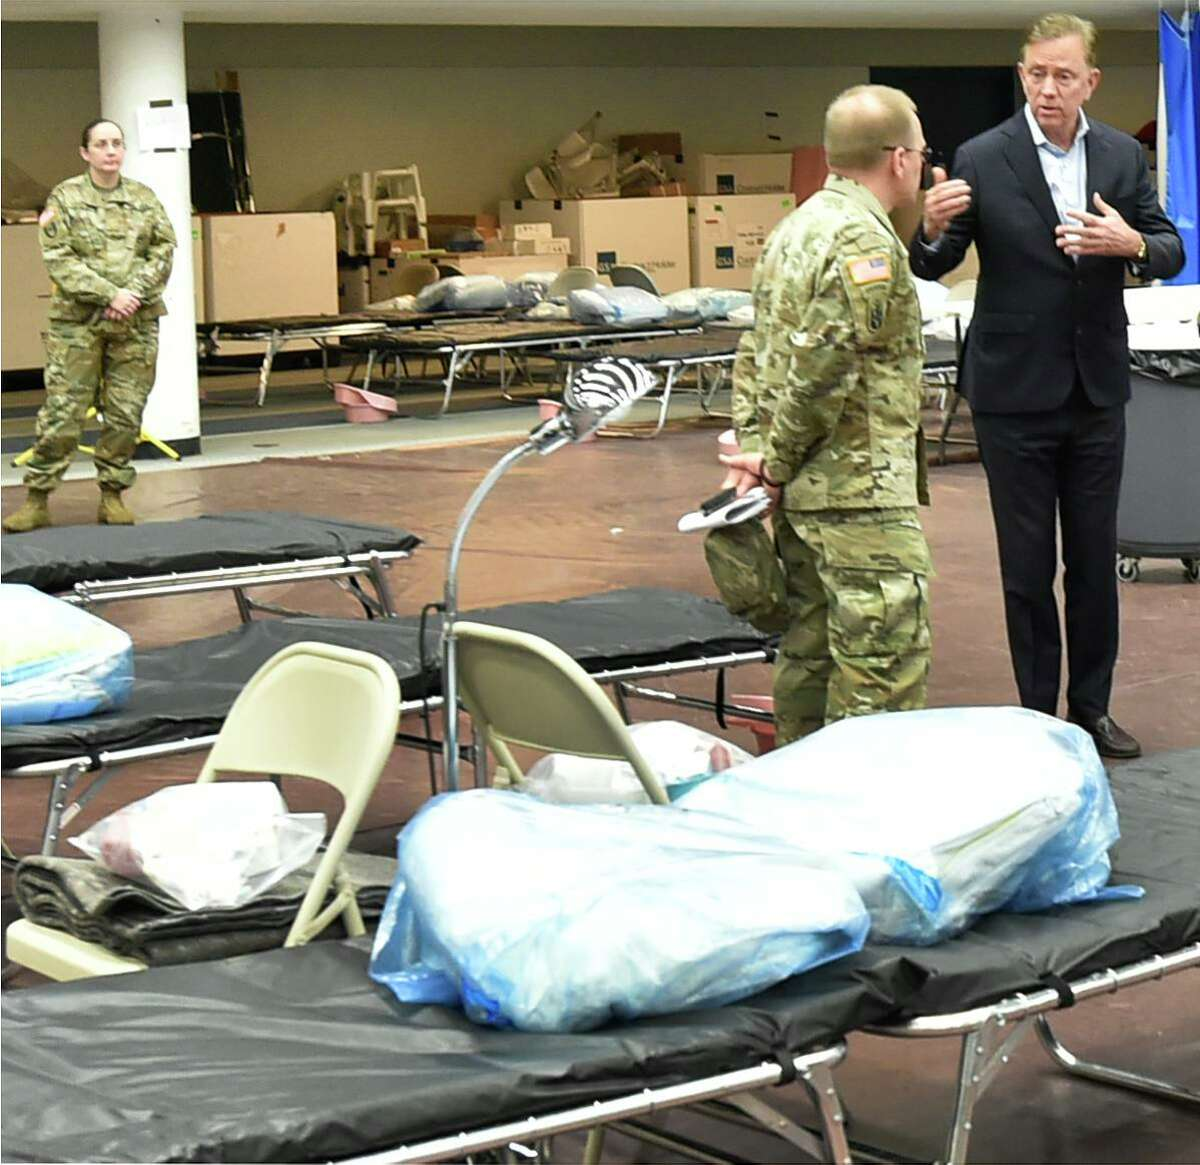 Connecticut Governor Ned Lamont, right, speaks with U.S. Army Major General Francis Evon, the Connecticut National Guard Adjutant General as he tours a Federal Emergency Management Agency 250-bed medical field hospital in April.